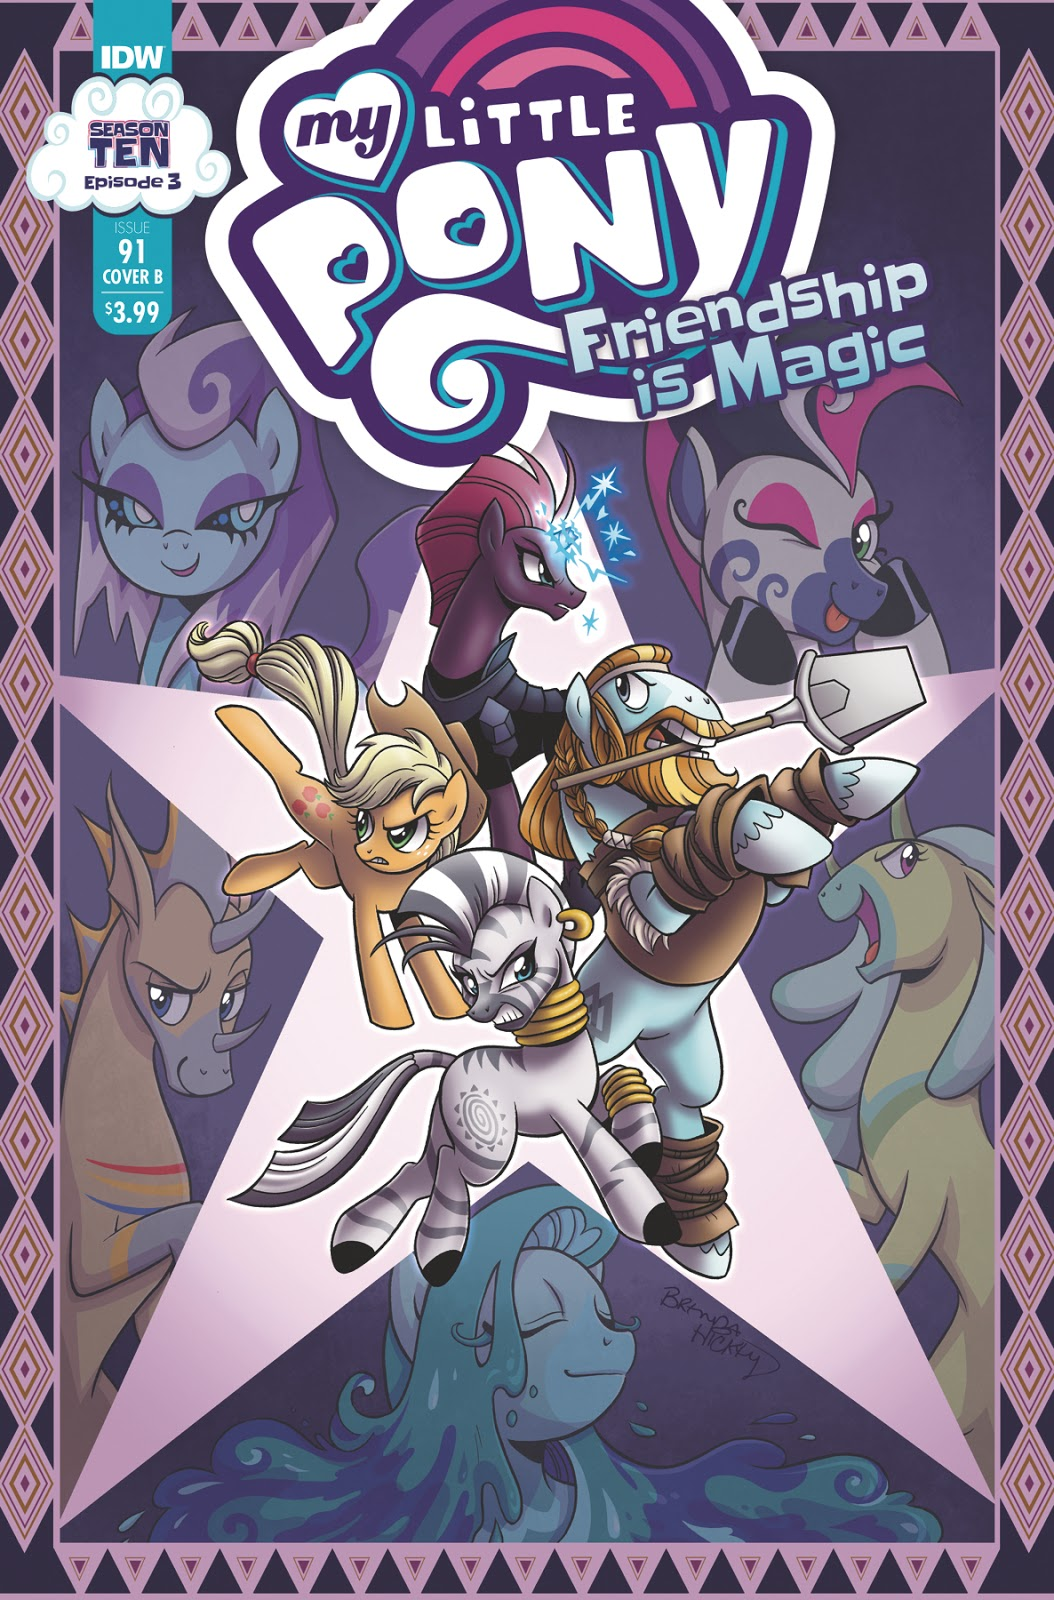 Equestria Daily Mlp Stuff Season 10 Comic My Little Pony Friendship Is Magic 91 Revealed Writer Synopsis And Artist